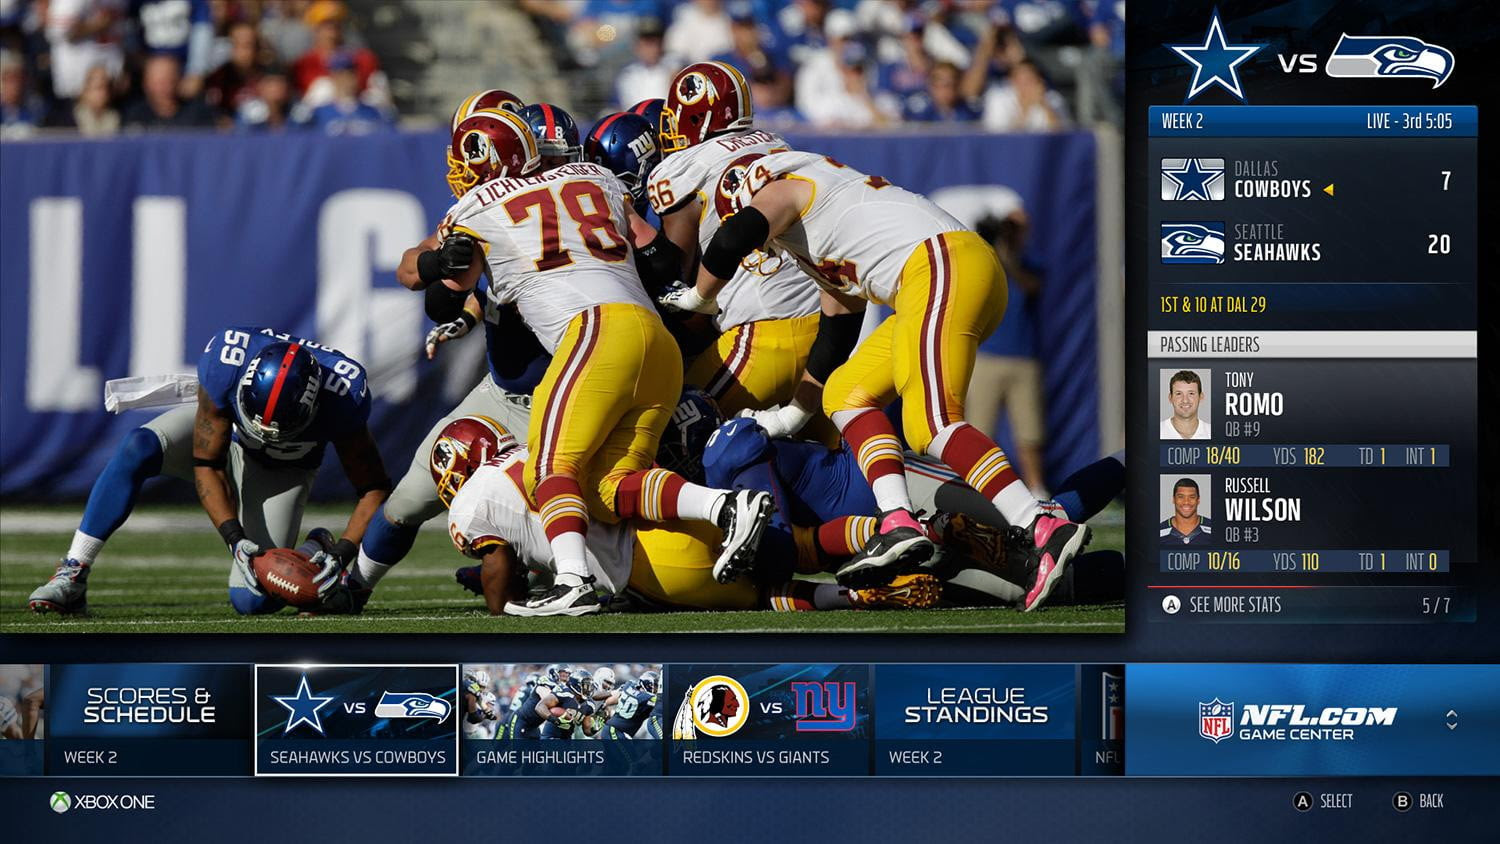 Xbox One rewards cord keepers with live NFL games  Digital Trends